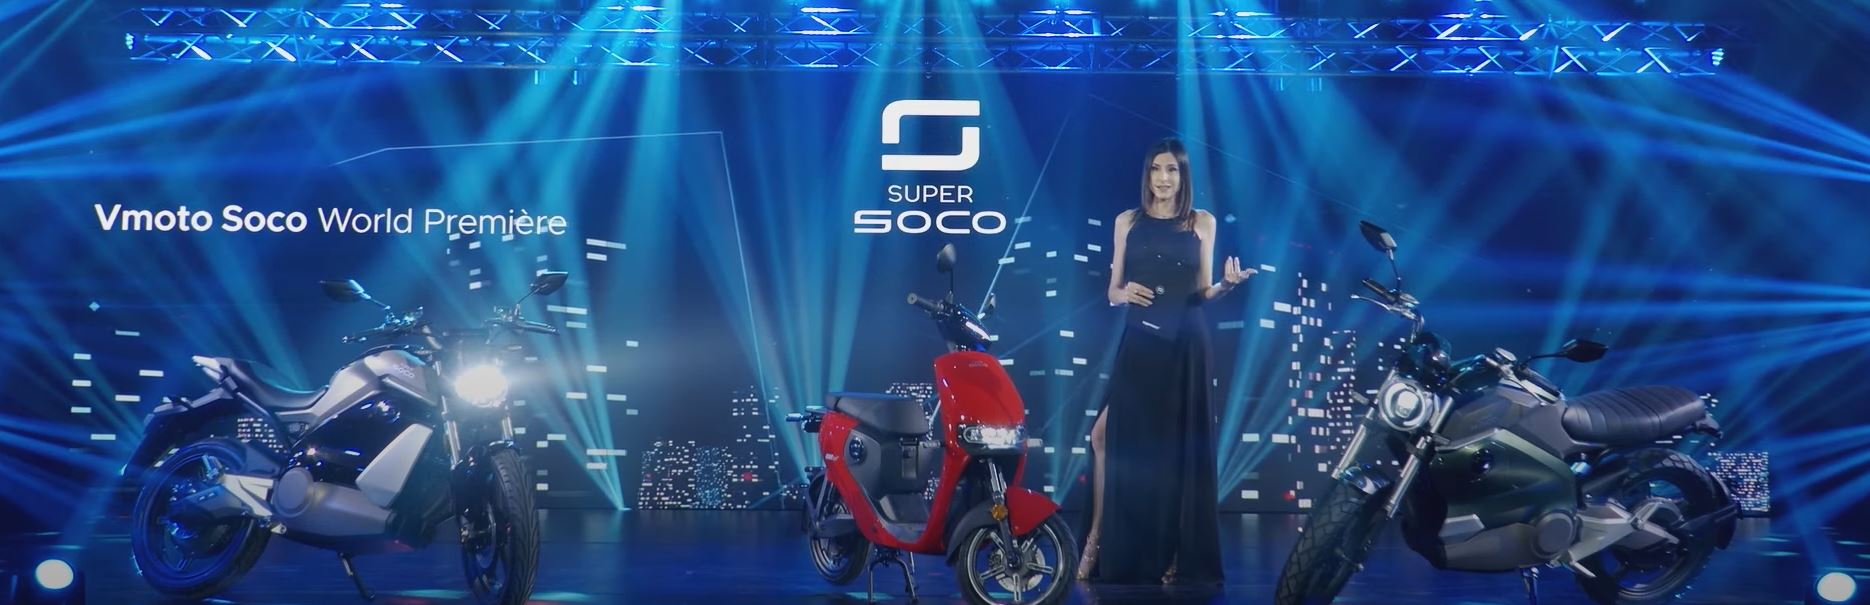 VMoto Super Soco 2021 Premier – the TS Street Hunter, TC Wanderer and CUmini